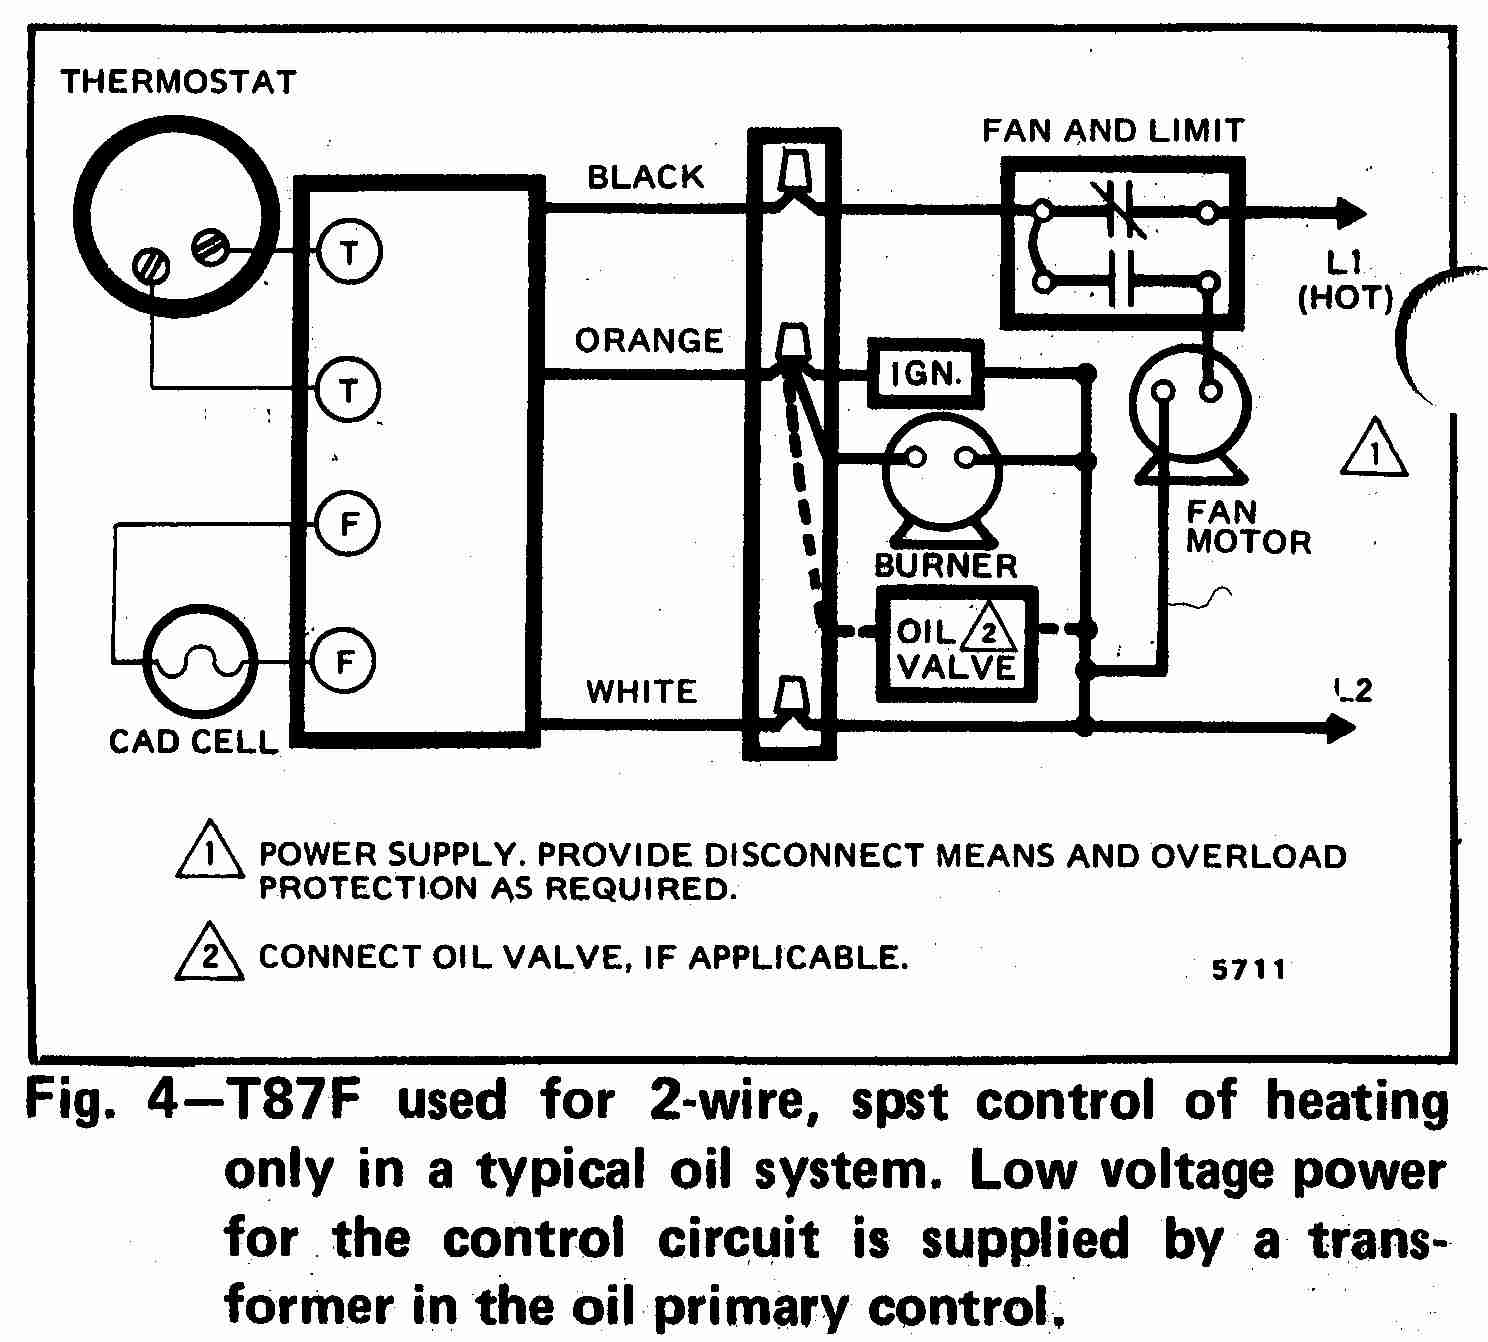 TT_T87F_0002_2W_DJF room thermostat wiring diagrams for hvac systems hvac wiring diagram at crackthecode.co